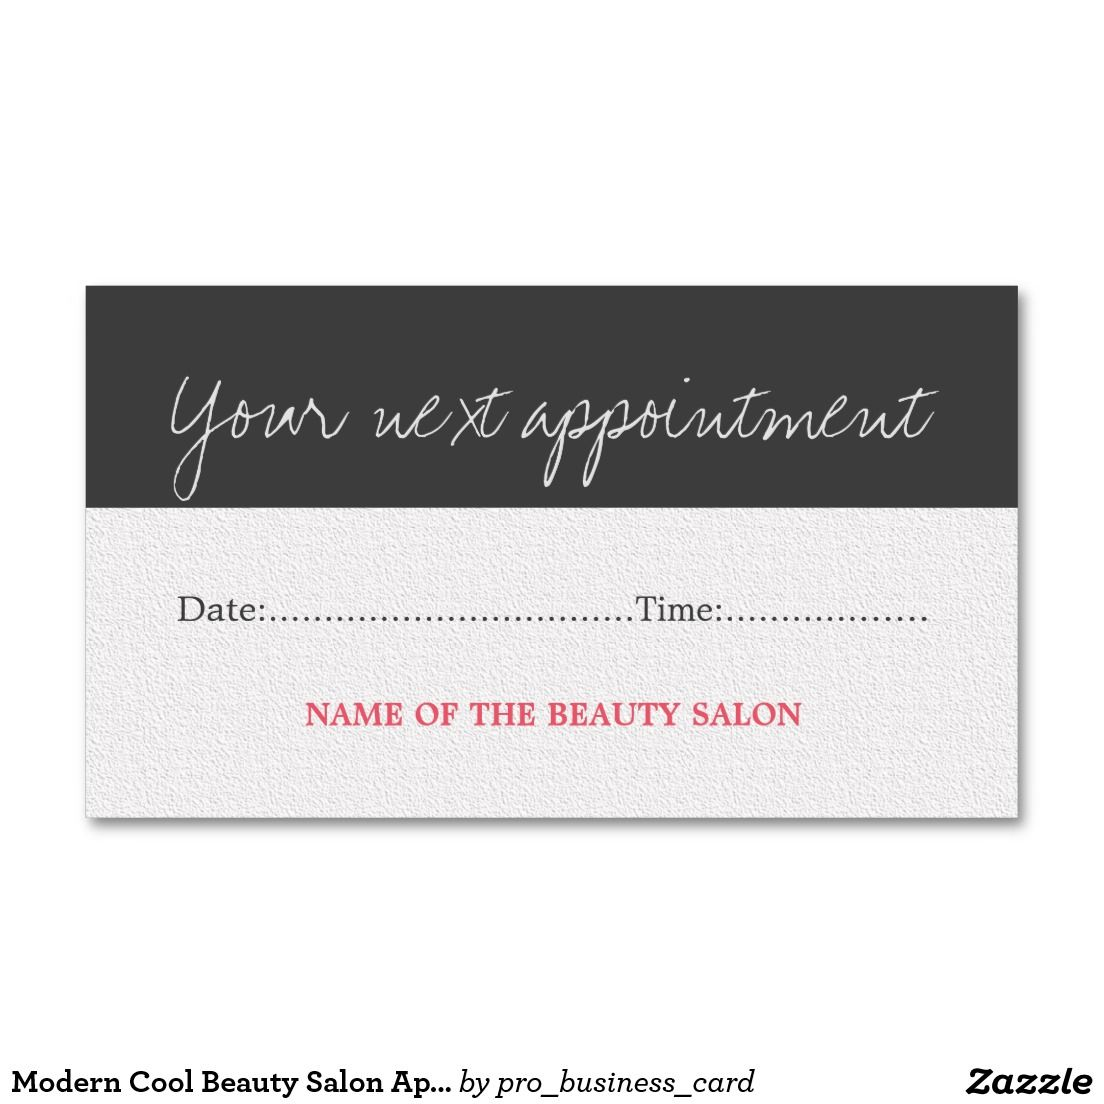 Modern Cool Beauty Salon Appointment Card Business Card | business ...